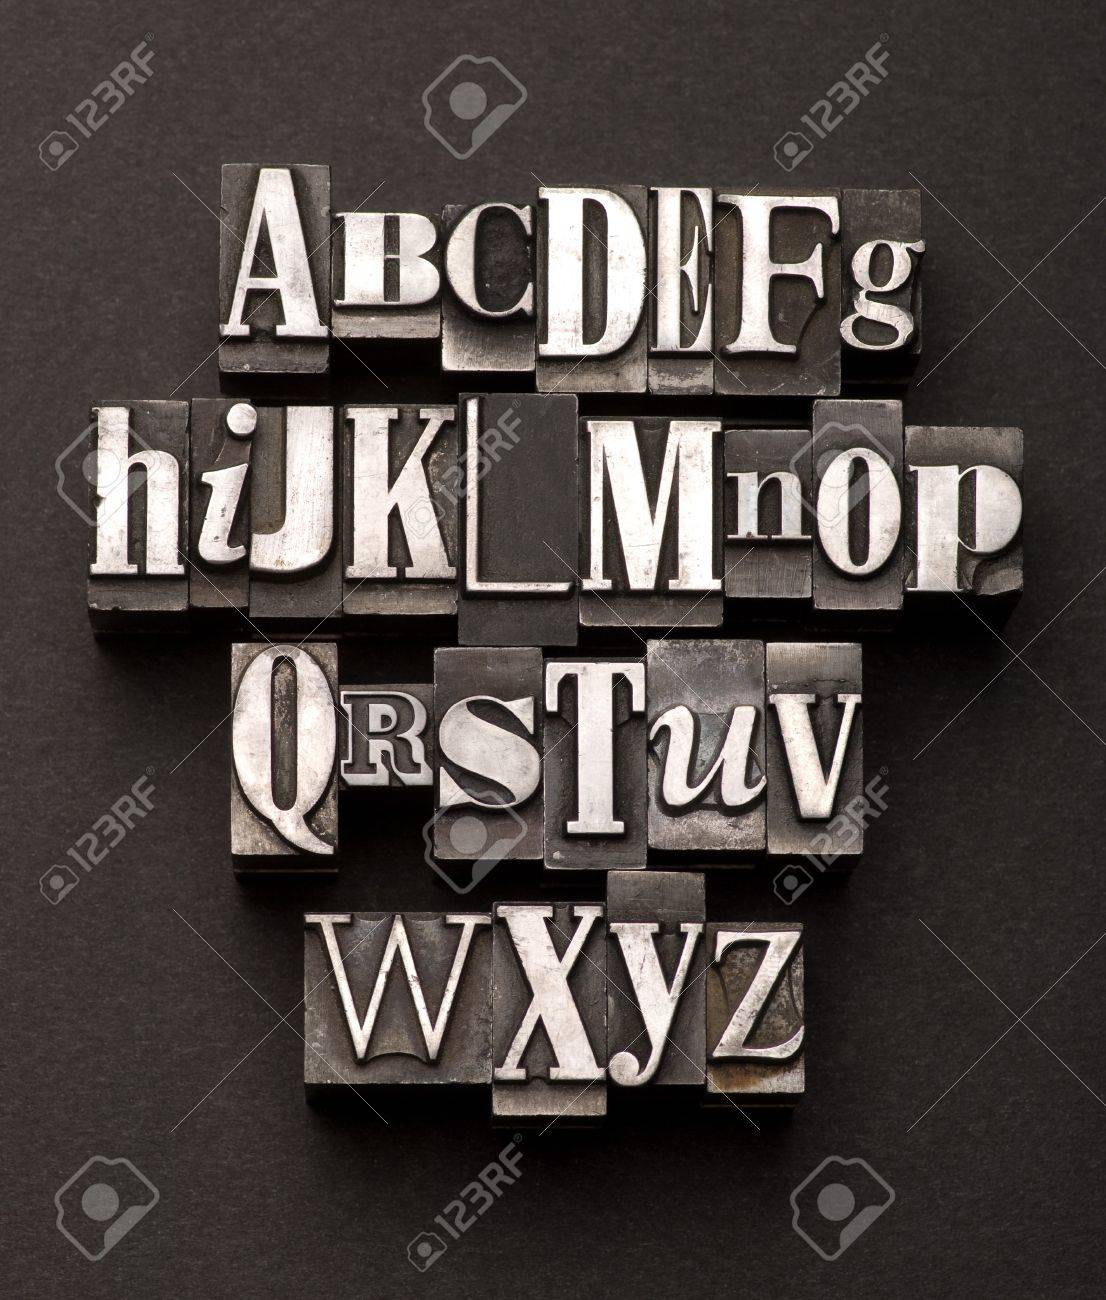 Alphabet photographed using a mix of vintage letterpress characters on a black, textured background. Stock Photo - 4105107